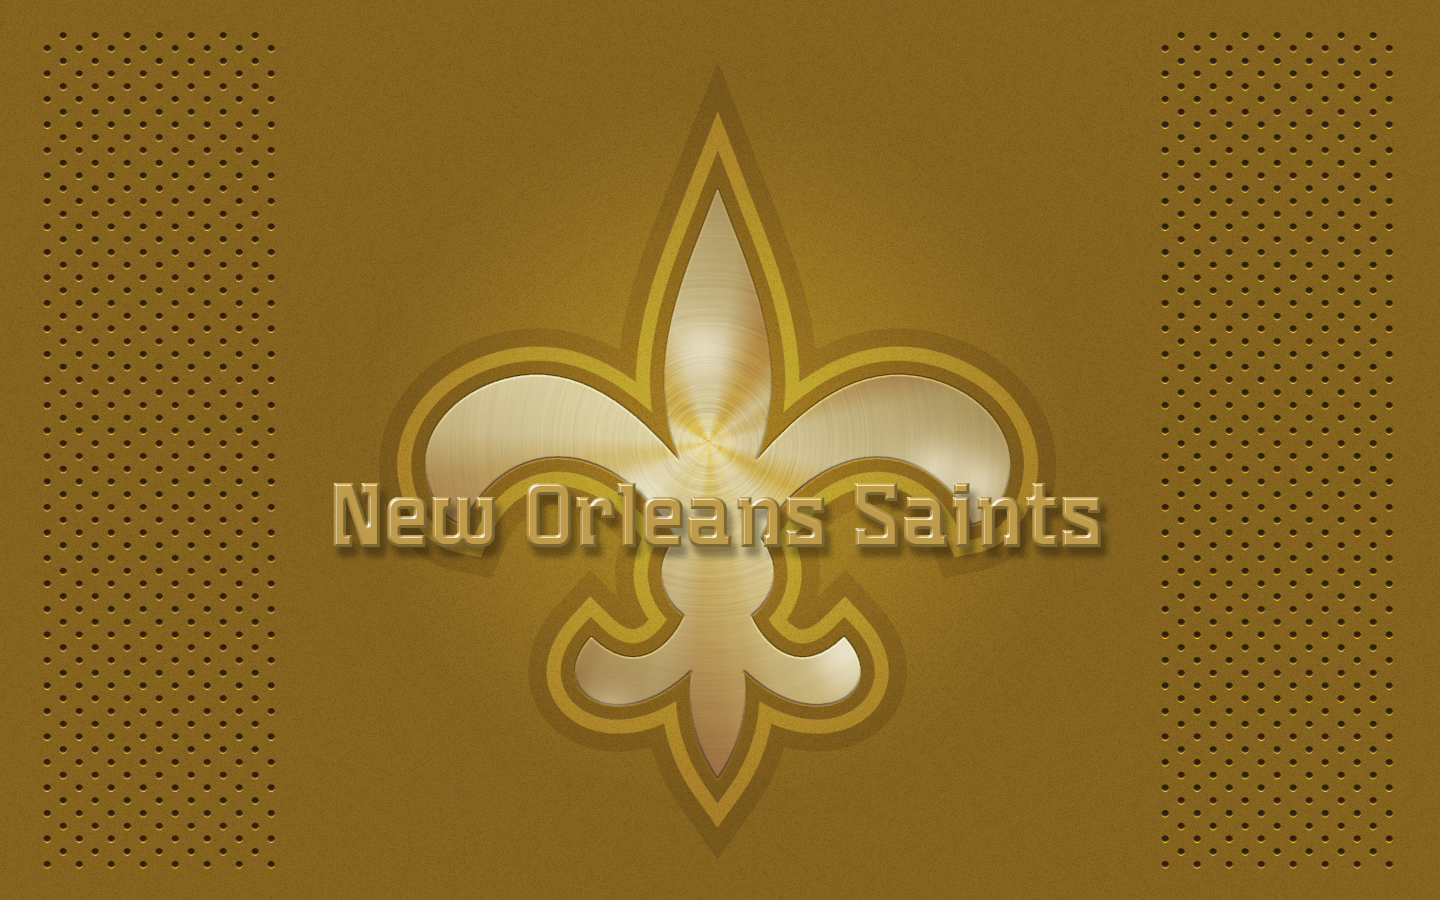 nfl New orleans saints HD Wallpaper